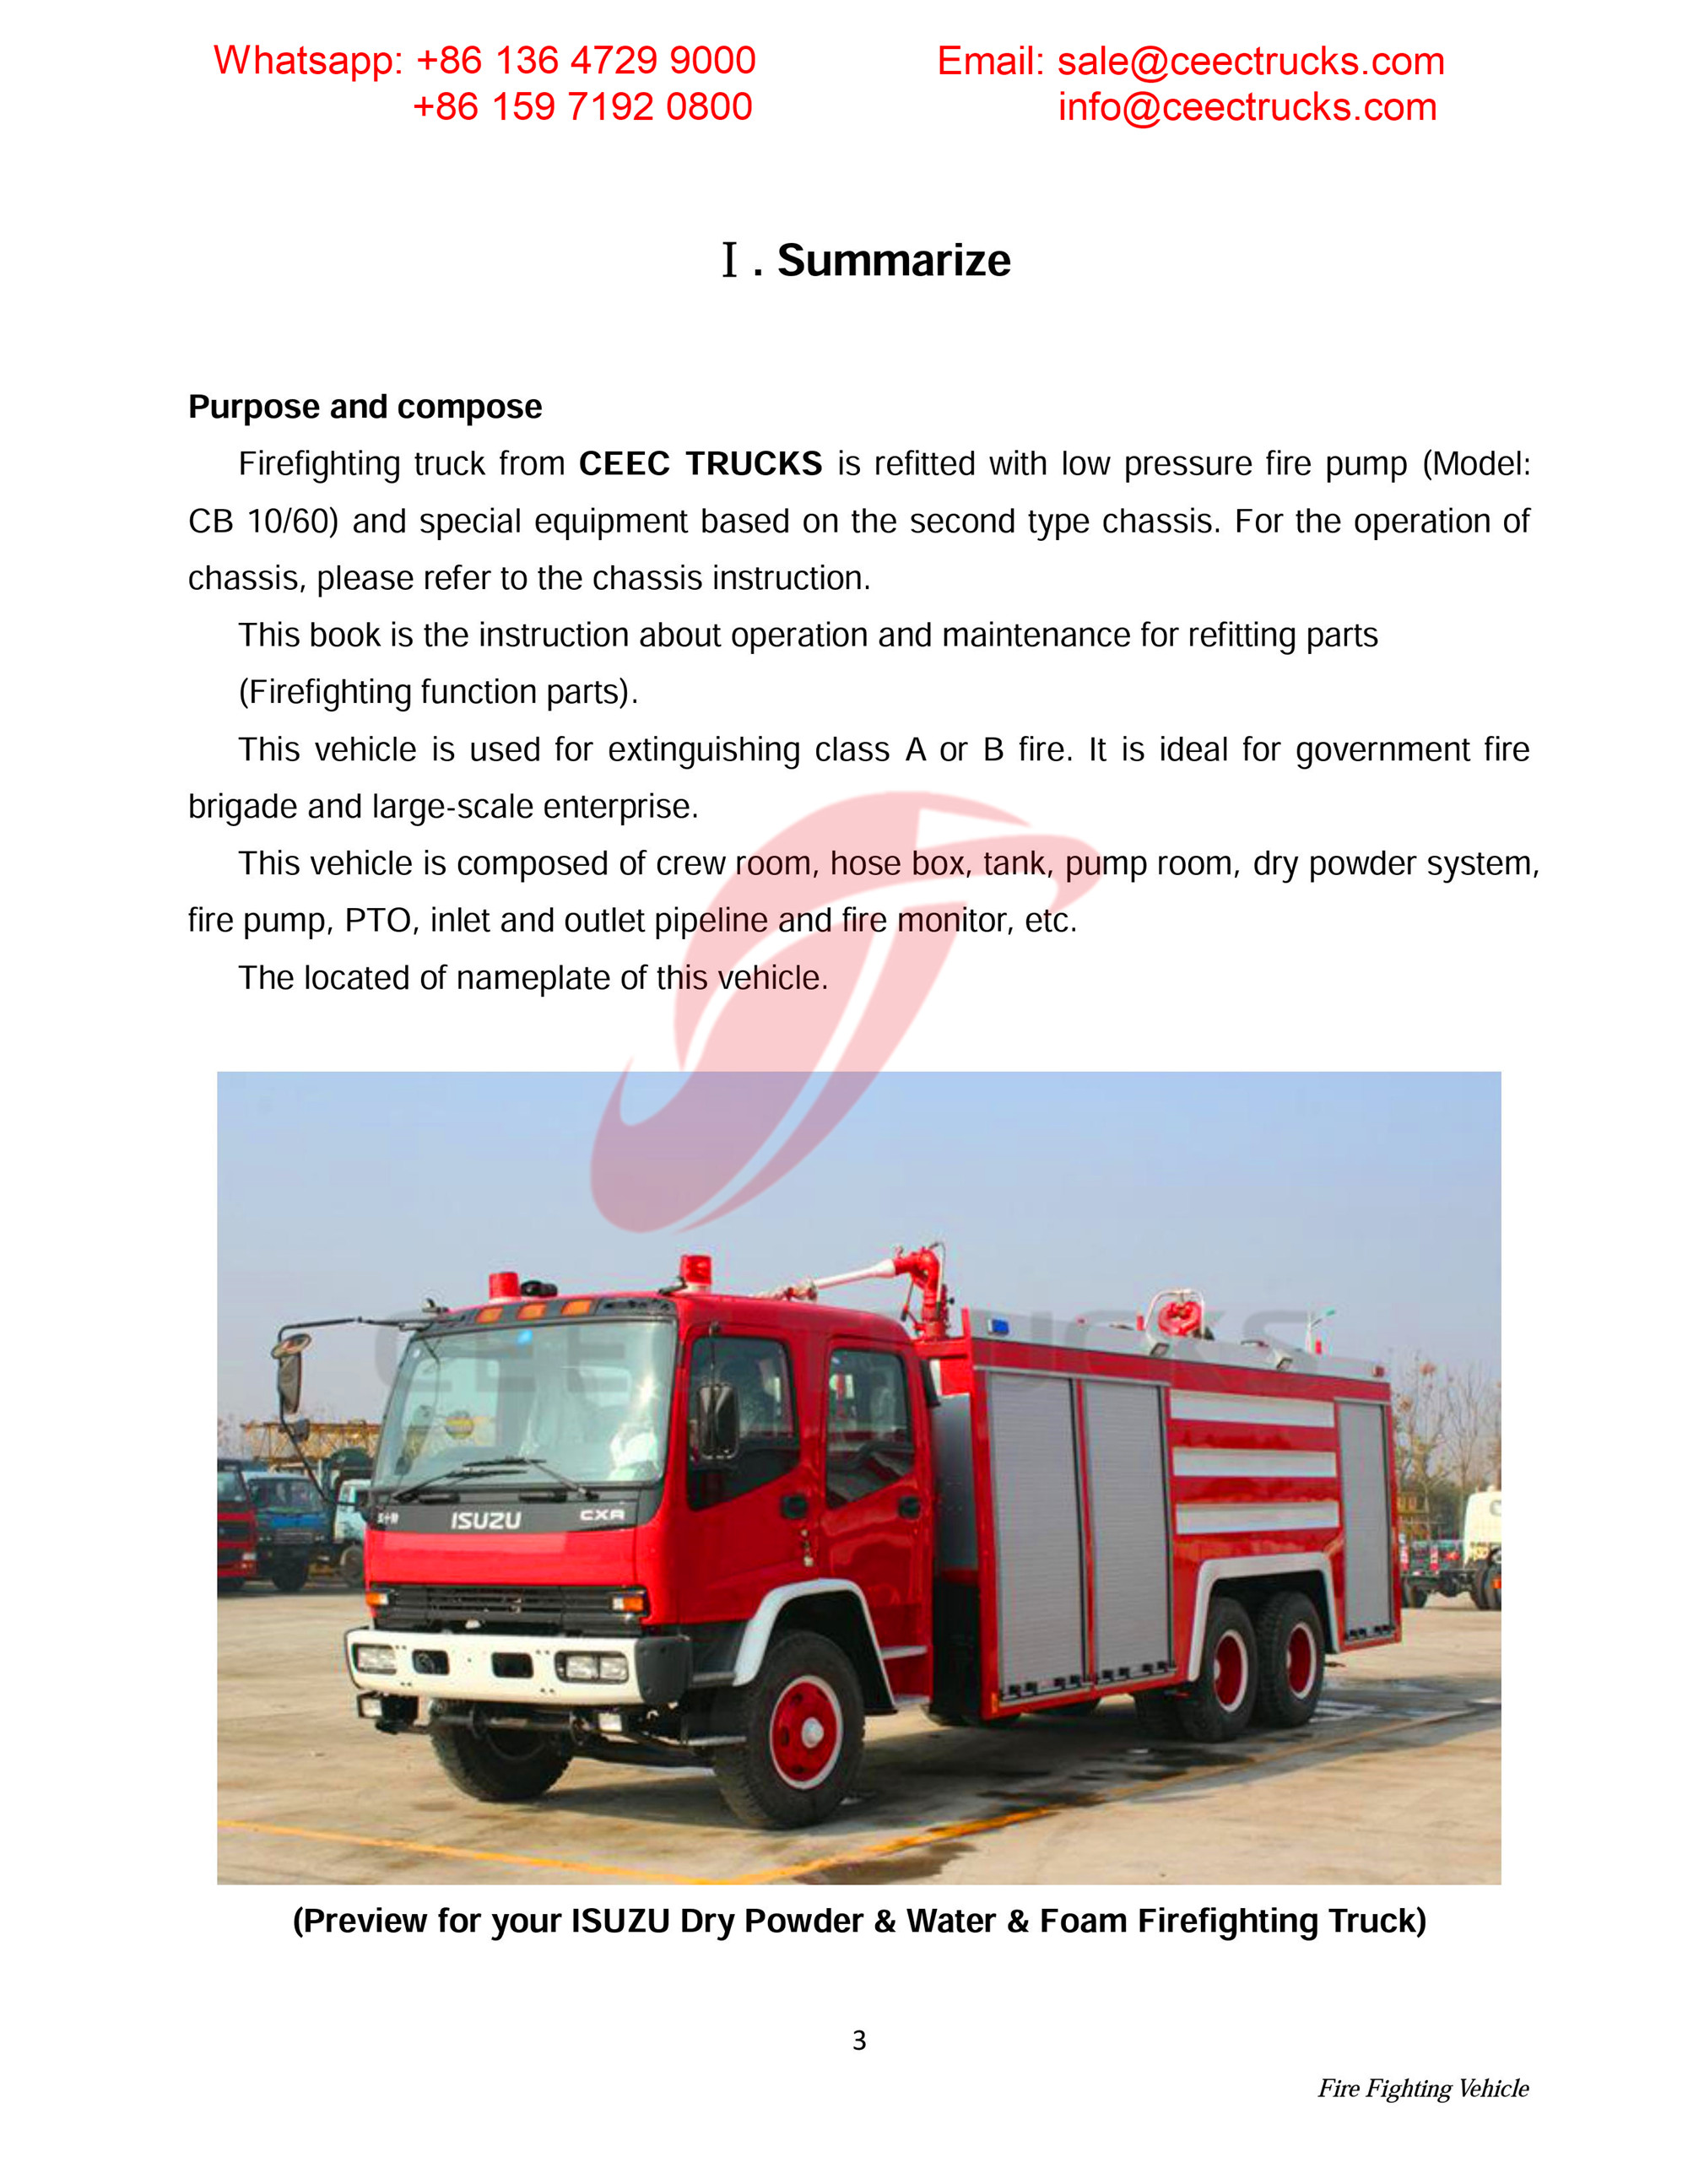 Syria ISUZU foam & water fire truck